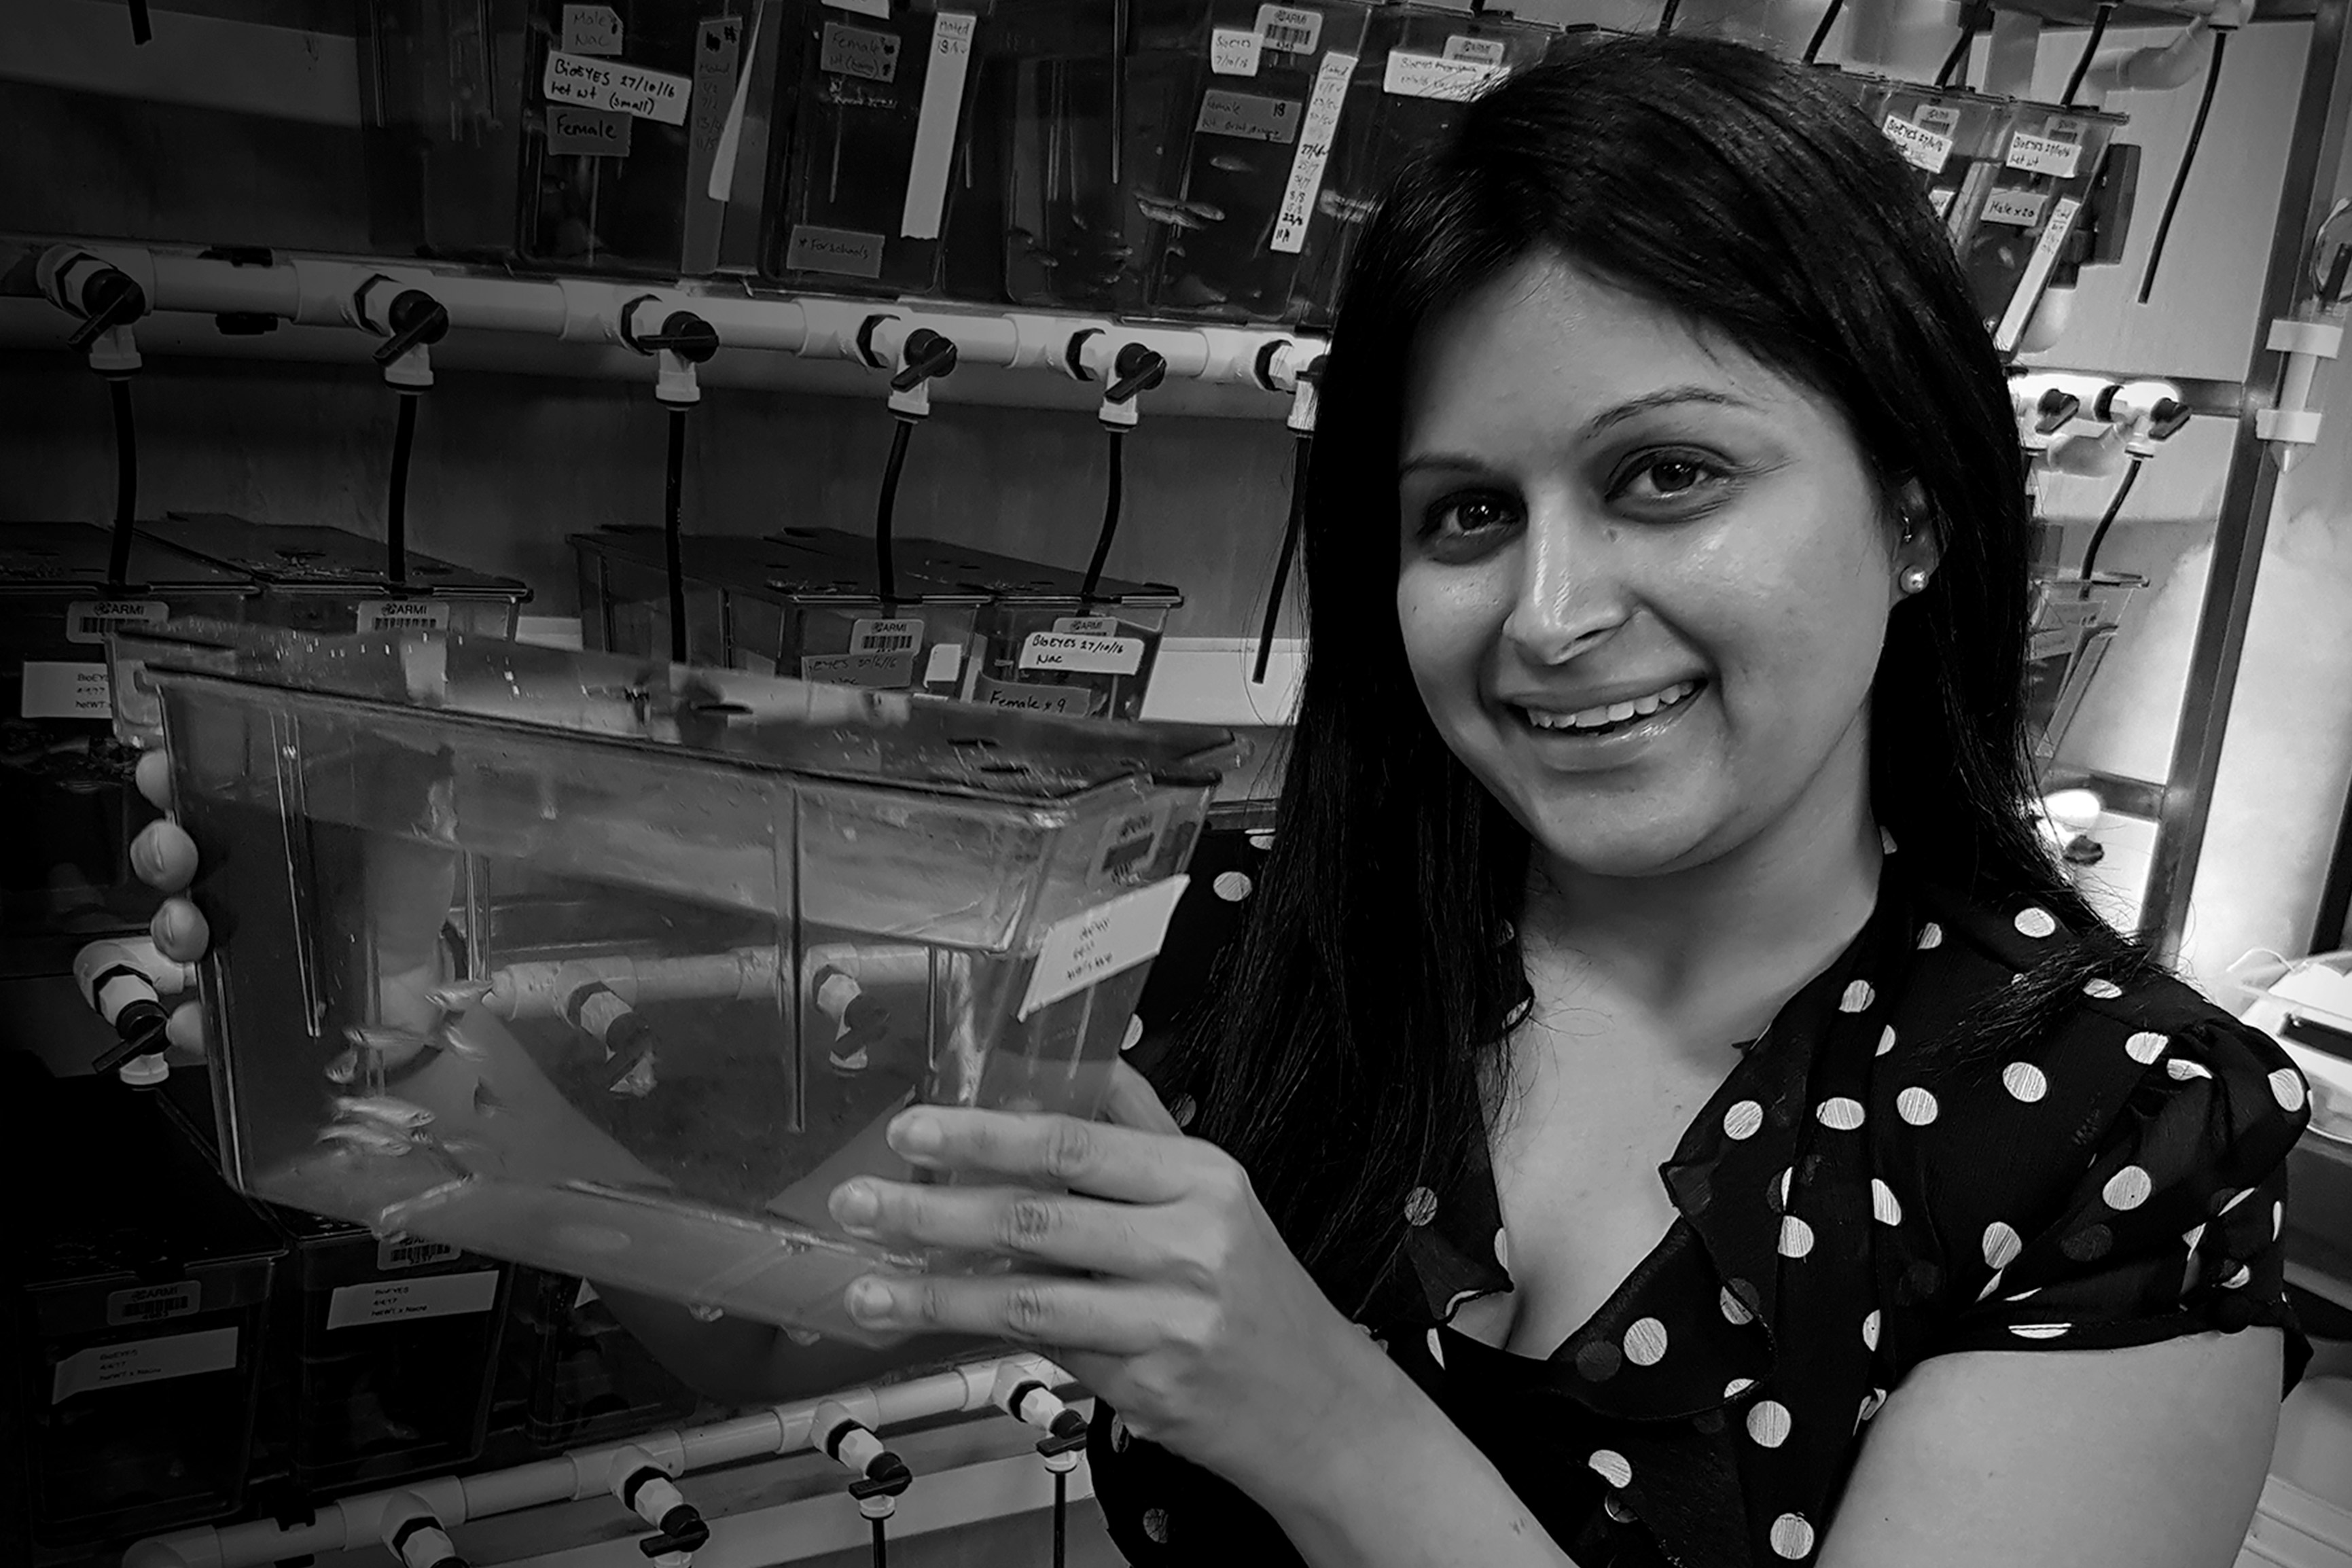 The young researcher using zebrafish to understand progressive muscle weakness